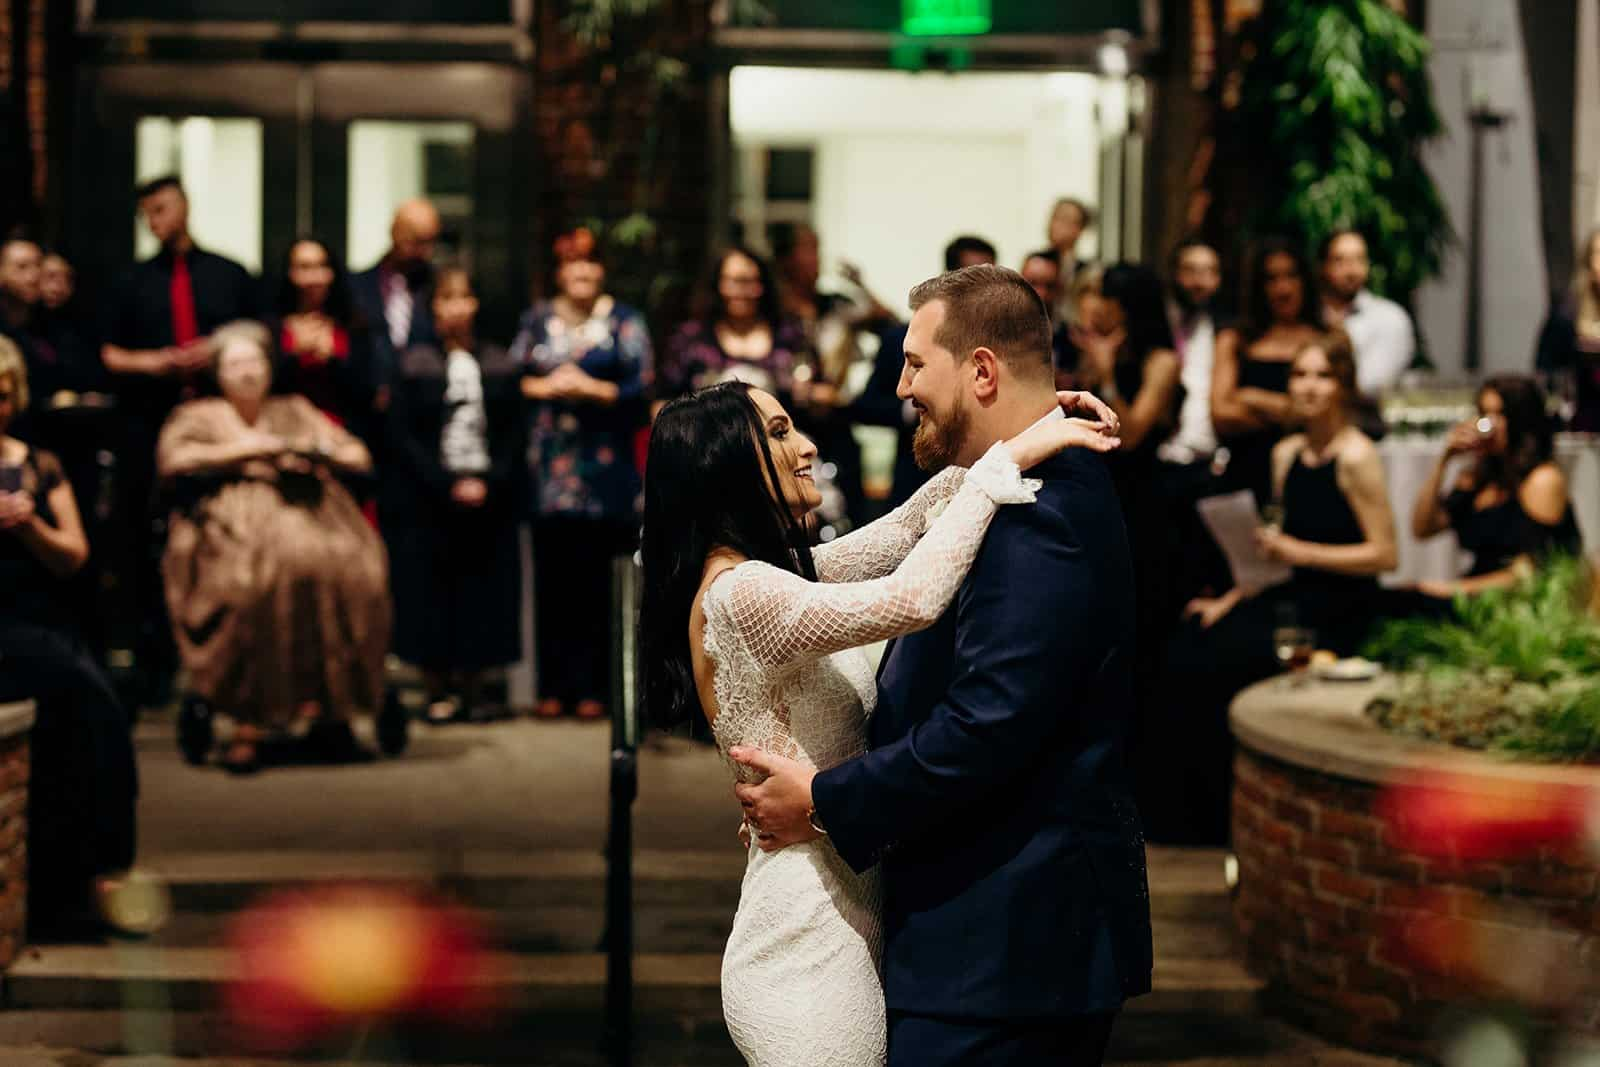 Family watches in the background while newly weds dance